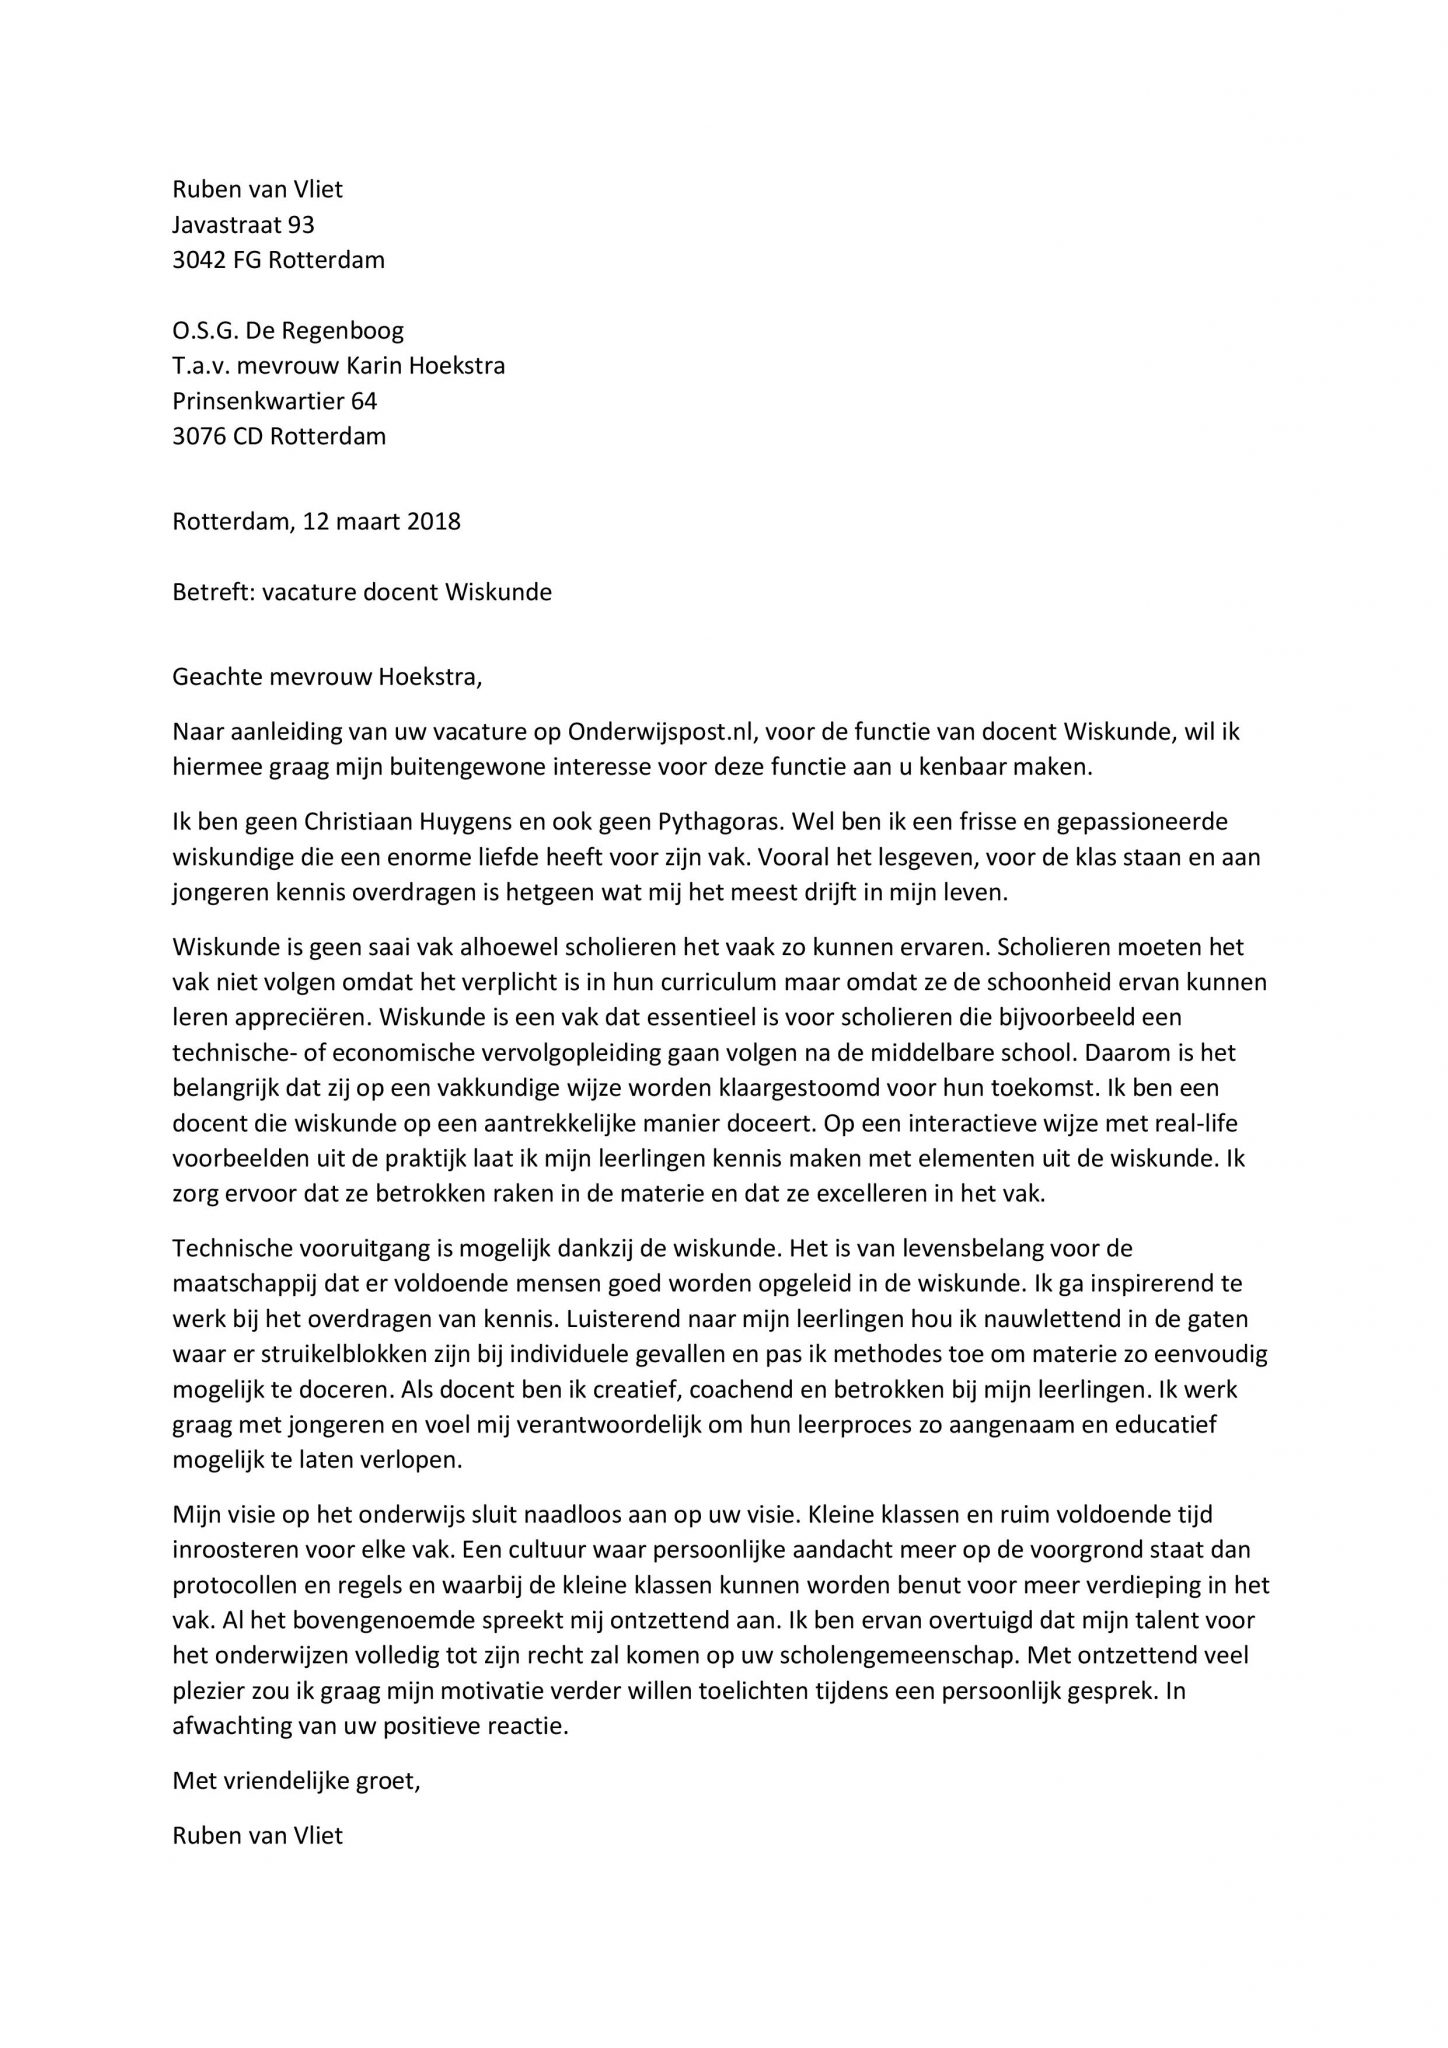 sollicitatiebrief docent Sollicitatiebrief Docent Wiskunde   De Beste Sollicitatiebrief  sollicitatiebrief docent